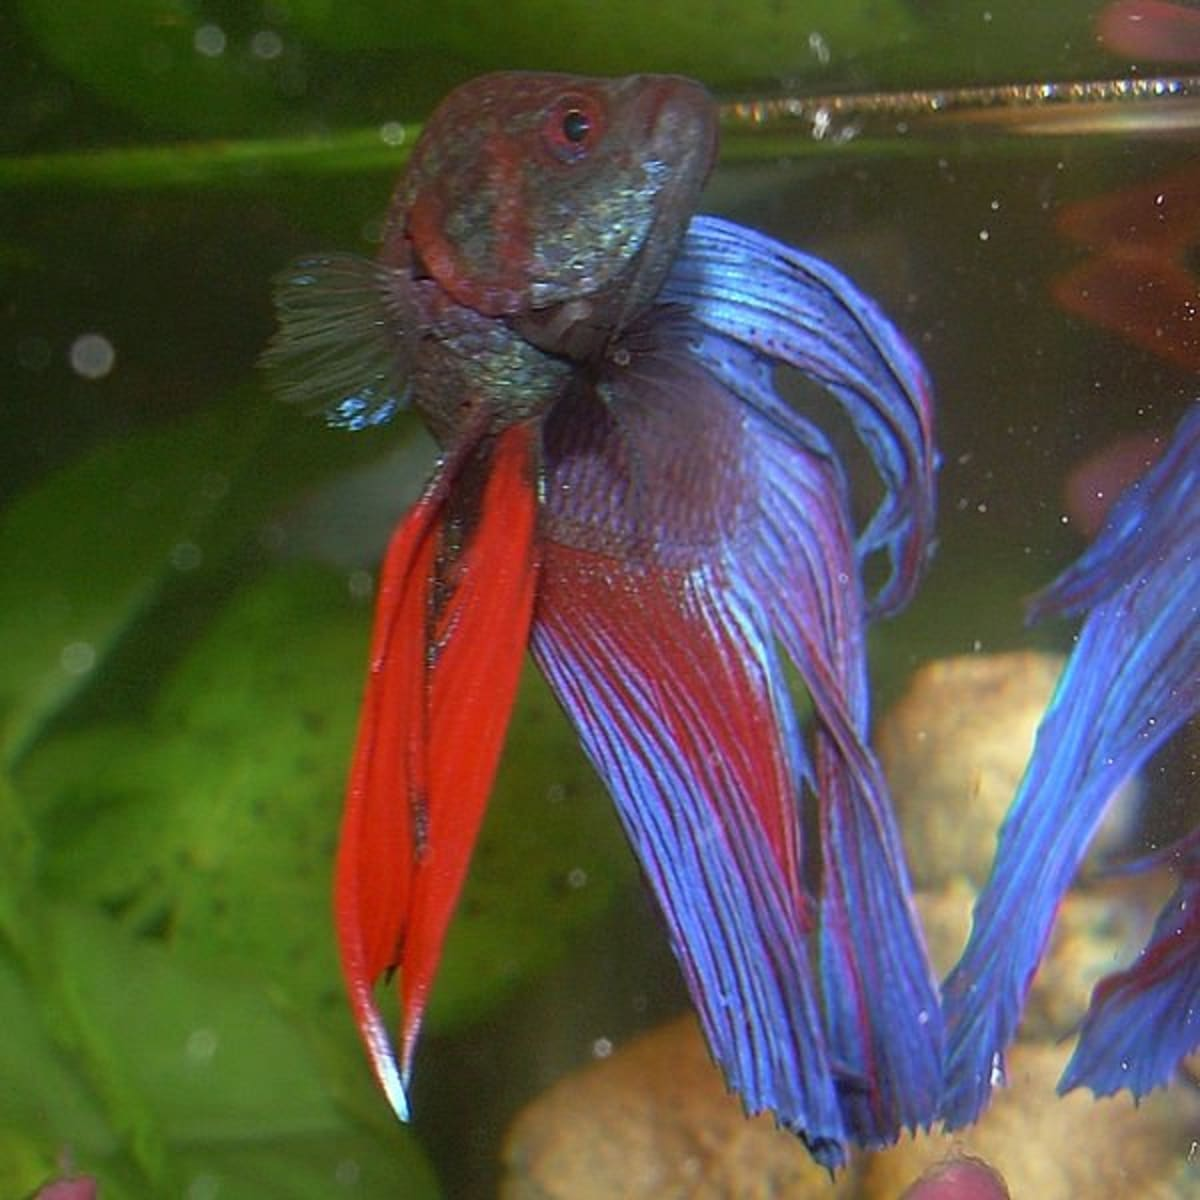 Do Betta Fish Need A Heater And Filter In Their Tank Pethelpful By Fellow Animal Lovers And Experts